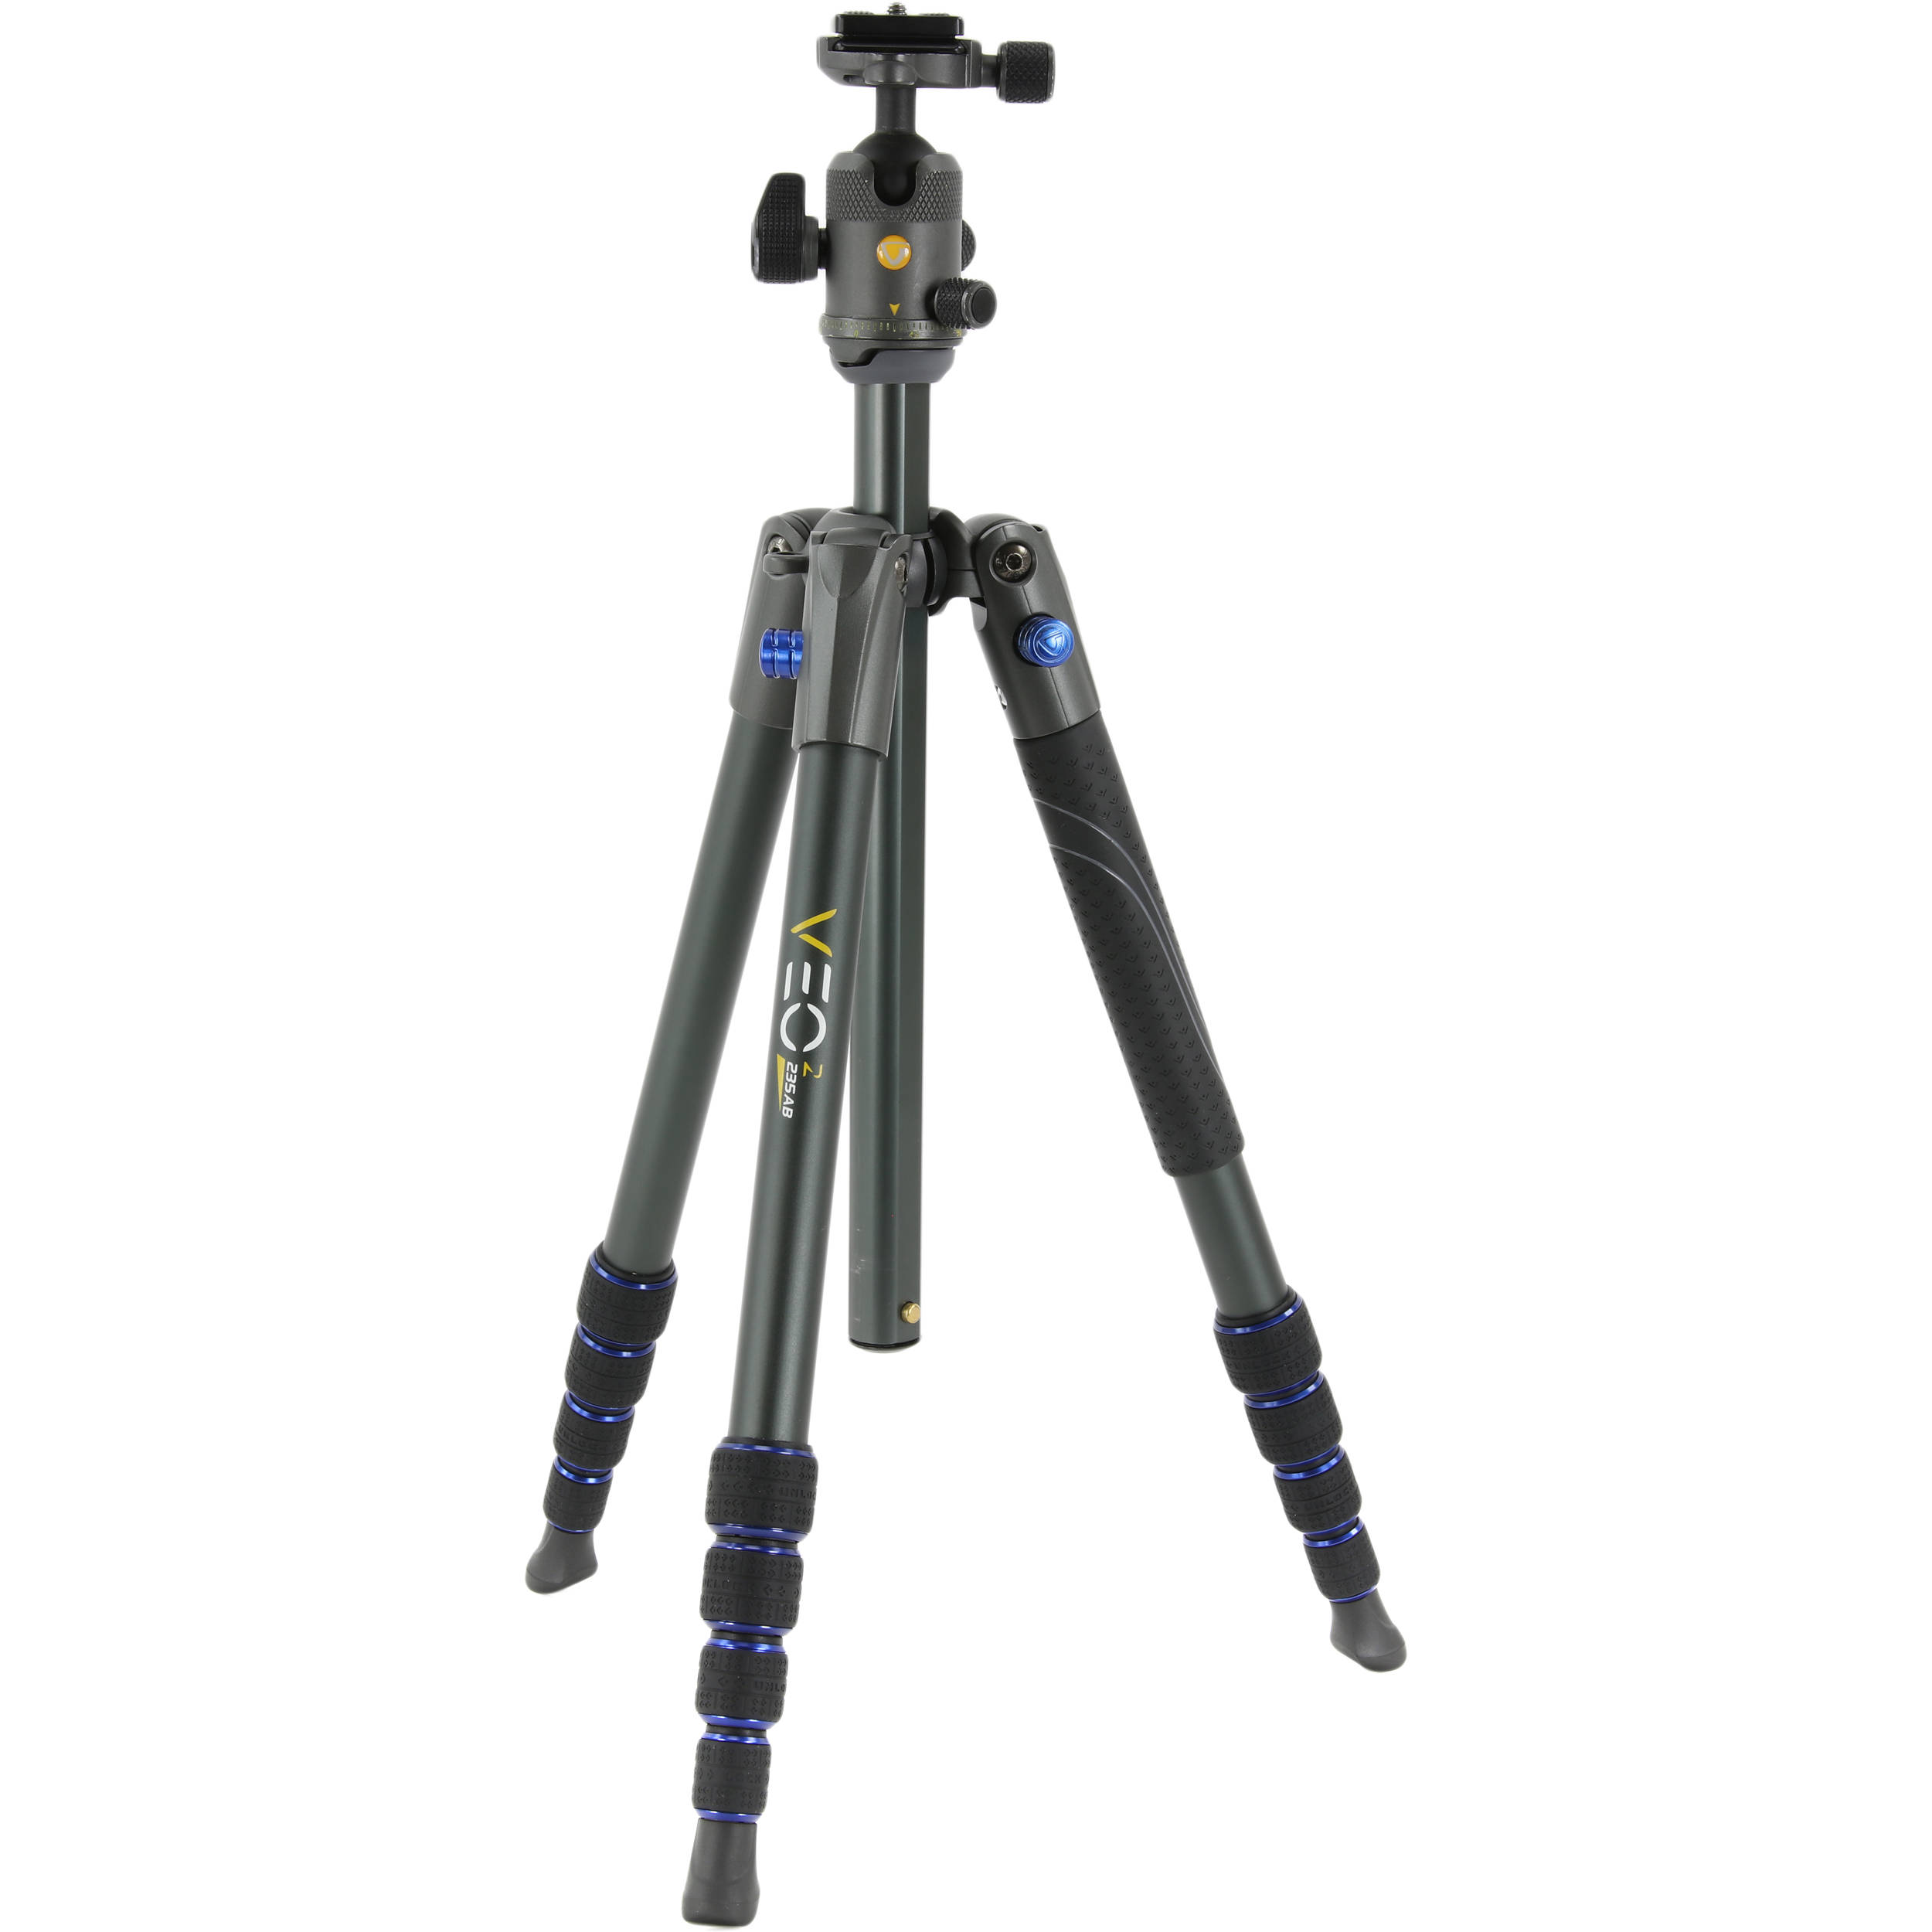 VEO 2 Travel Tripod